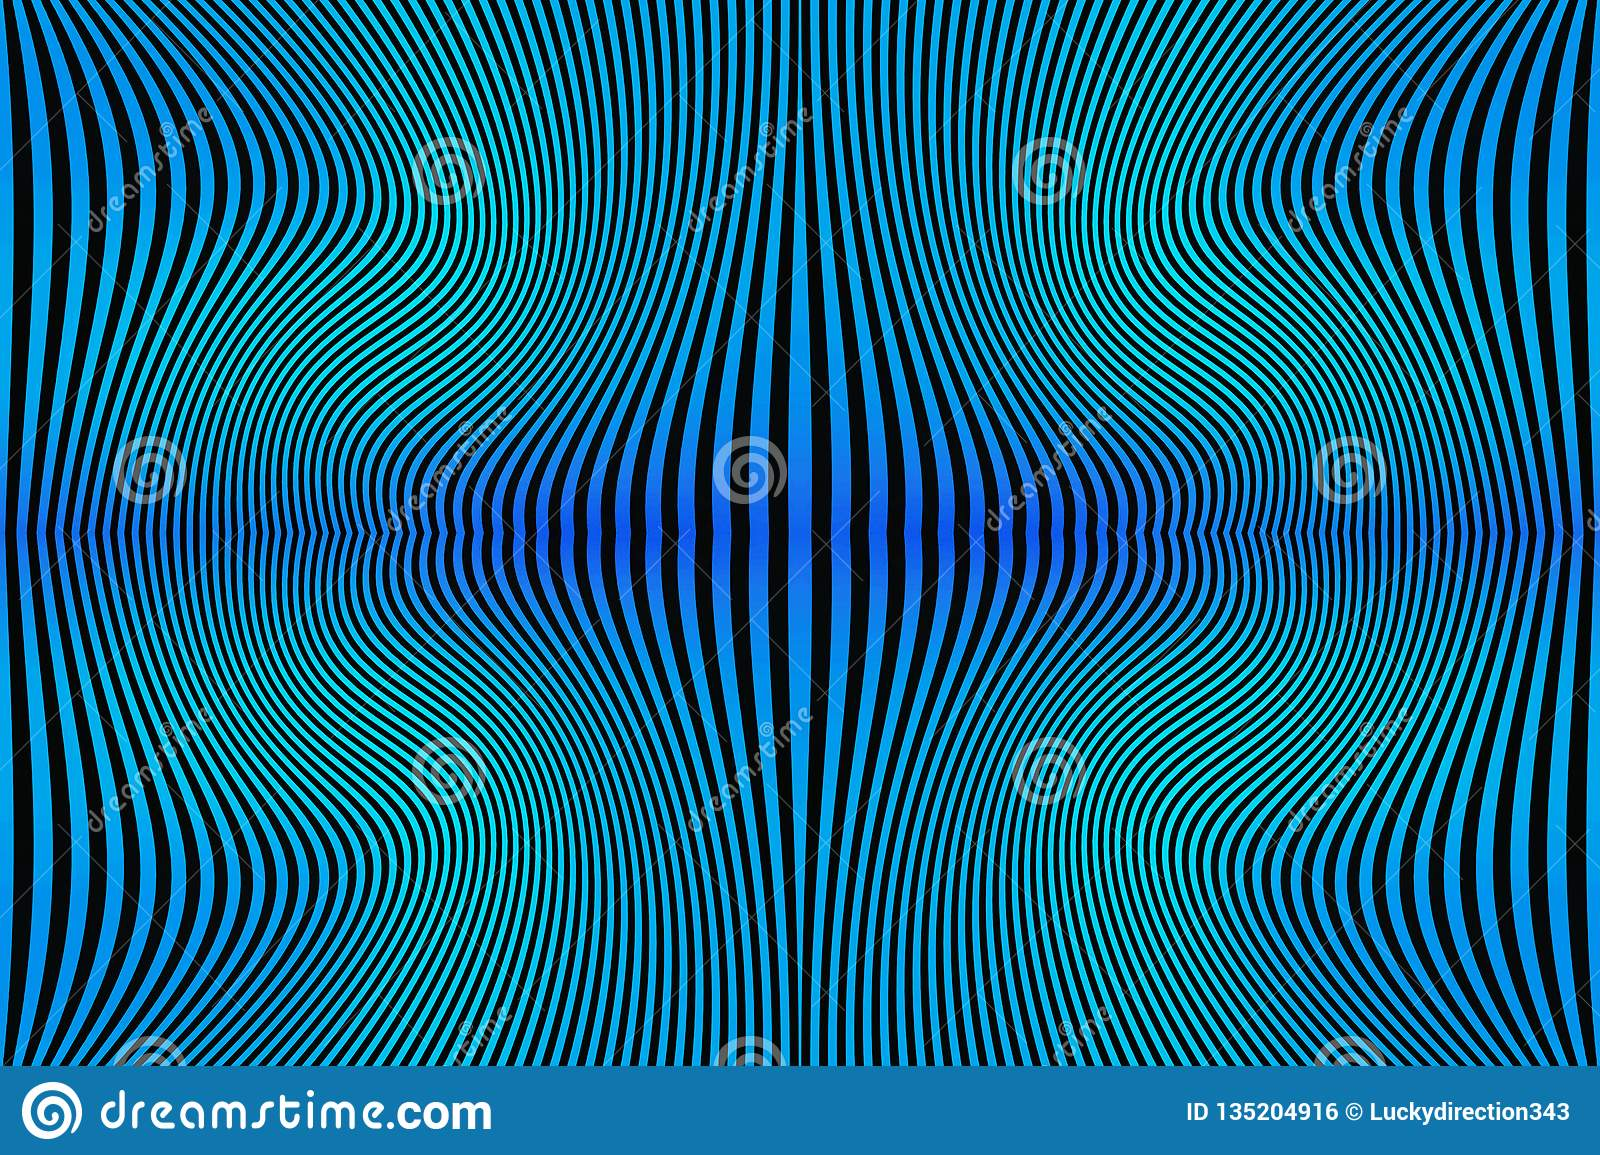 Colorful 3d Abstract Pattern Cool Background Wallpaper Images Patterns Designs Stock Illustration Illustration Of Beautiful Gradient 135204916